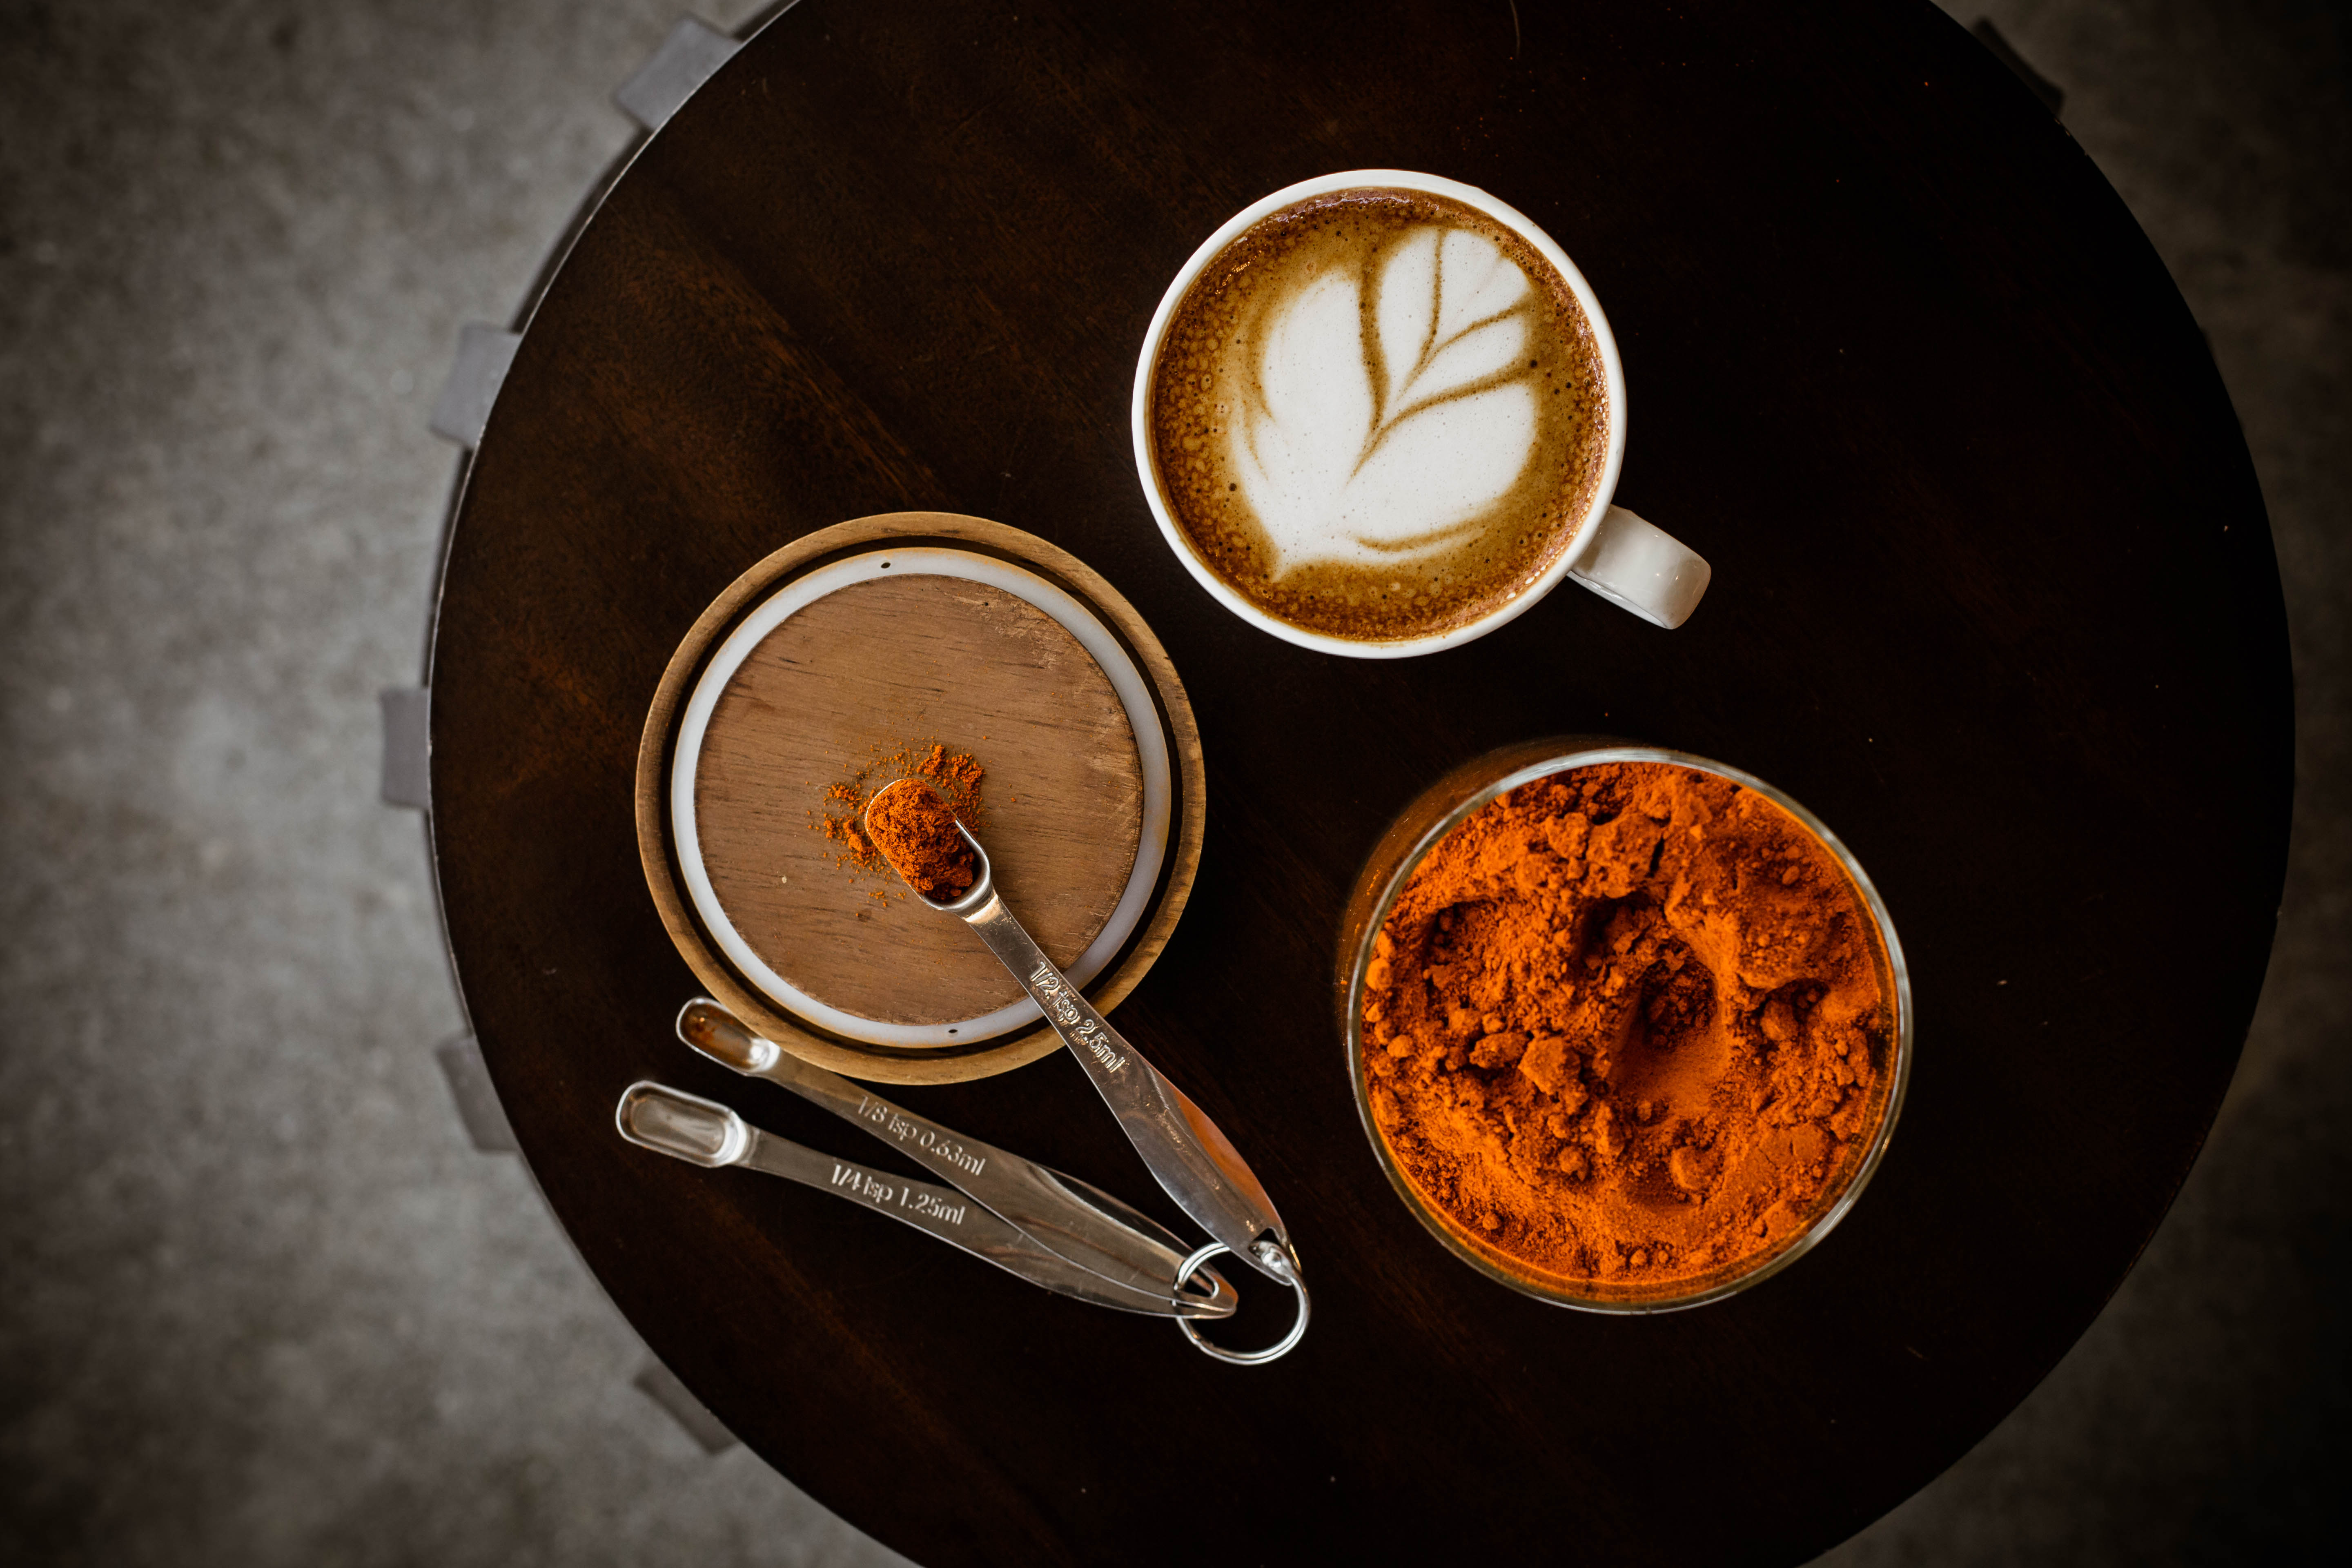 Topdown view of a berbere latte from Boona Boona with two cups nearby containing spices and other ingredients